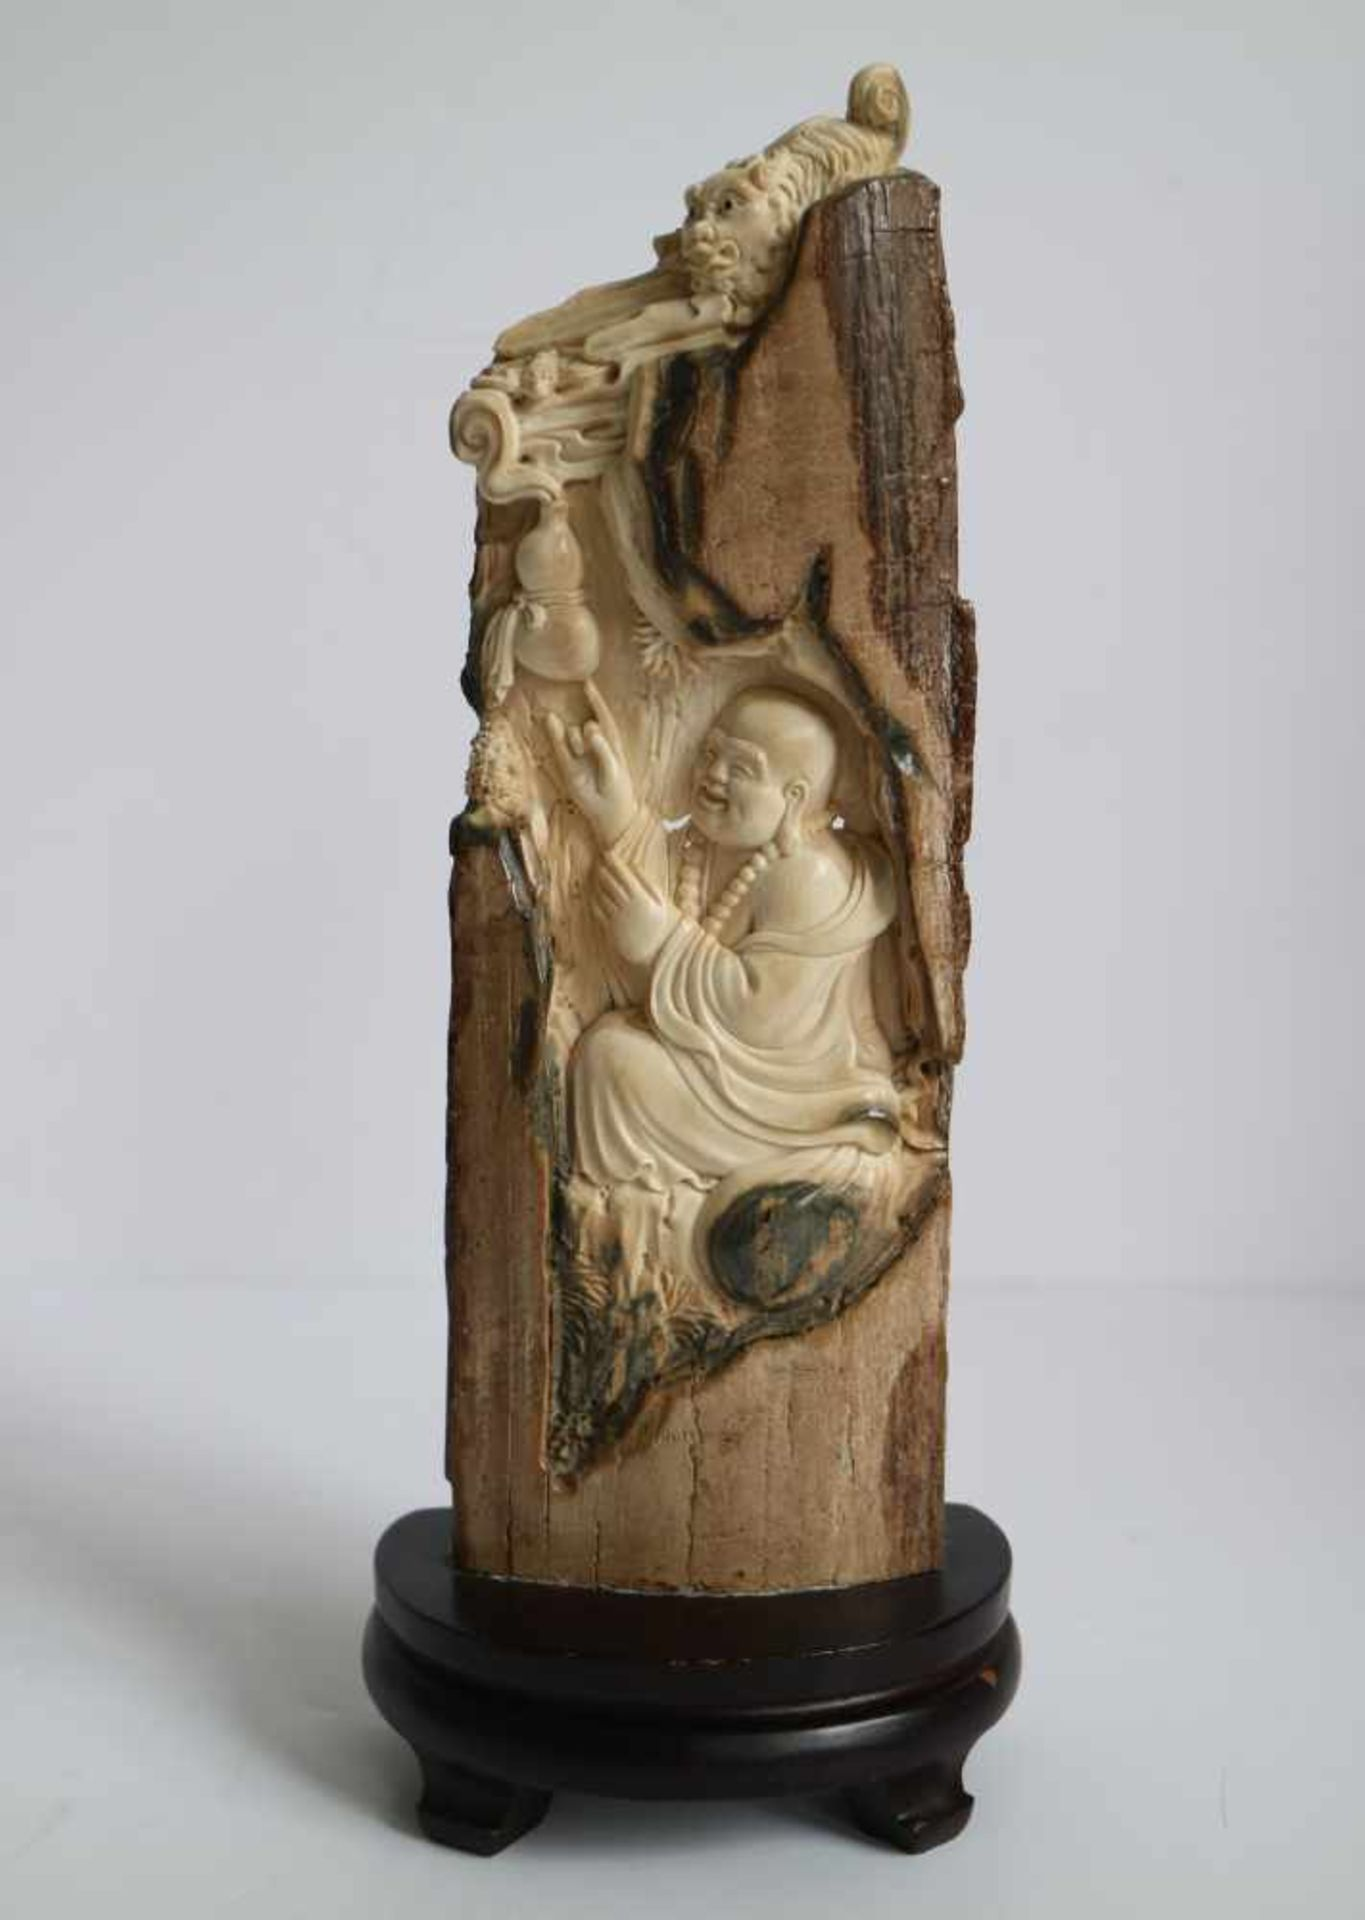 Los 669 - Mammoth ivory Buddha carving depicting Buddha as Fuhu Arhat China 1960's H 23,3 cm (with base)